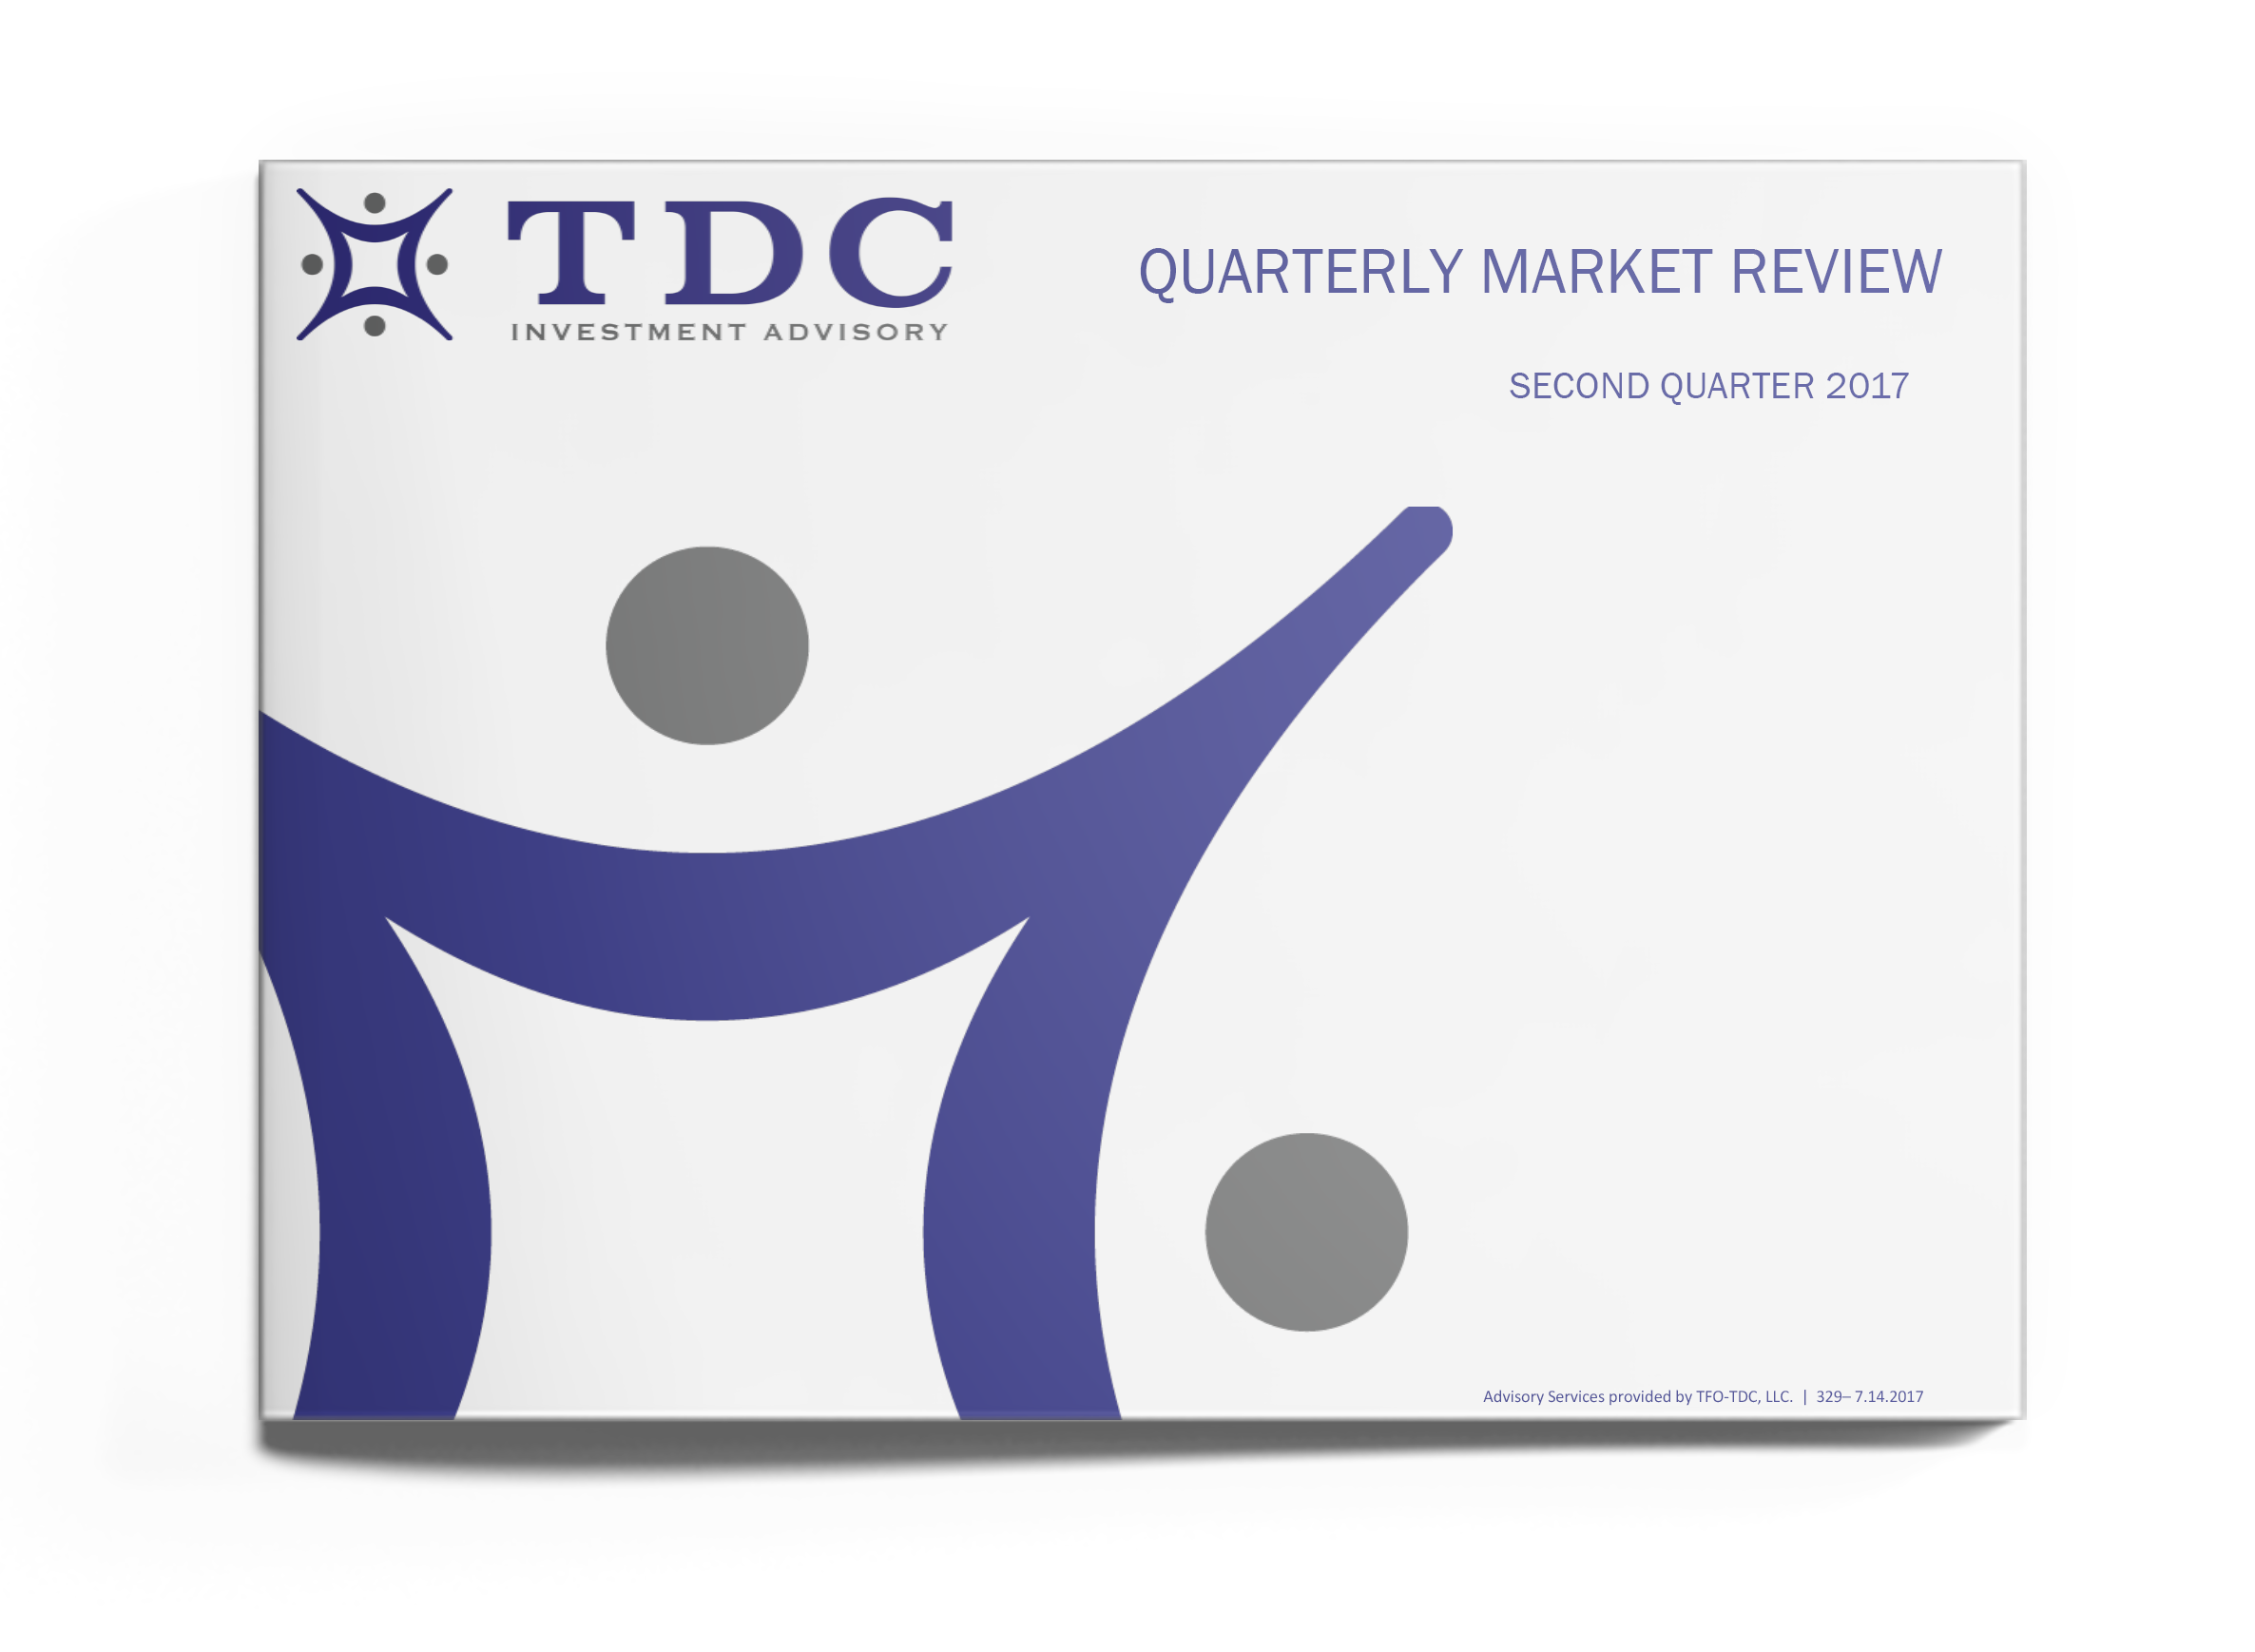 TDC's Quarterly Market Review for Q2 2017 is Now Available